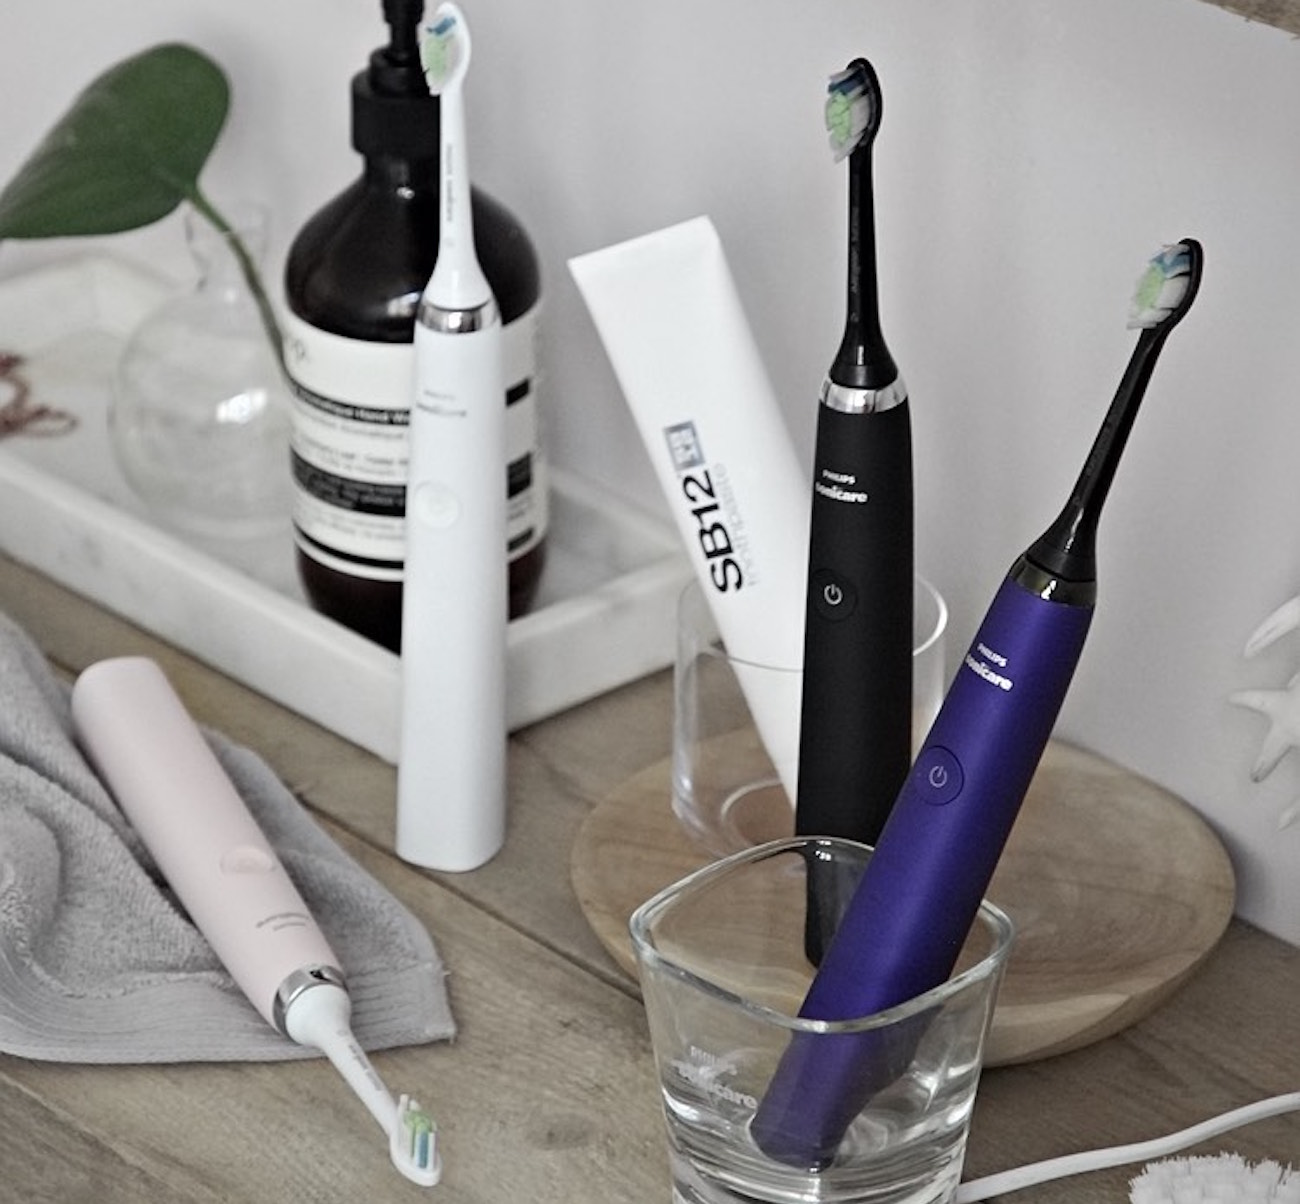 The Best Electric Toothbrushes for 2019 | Reviews.com